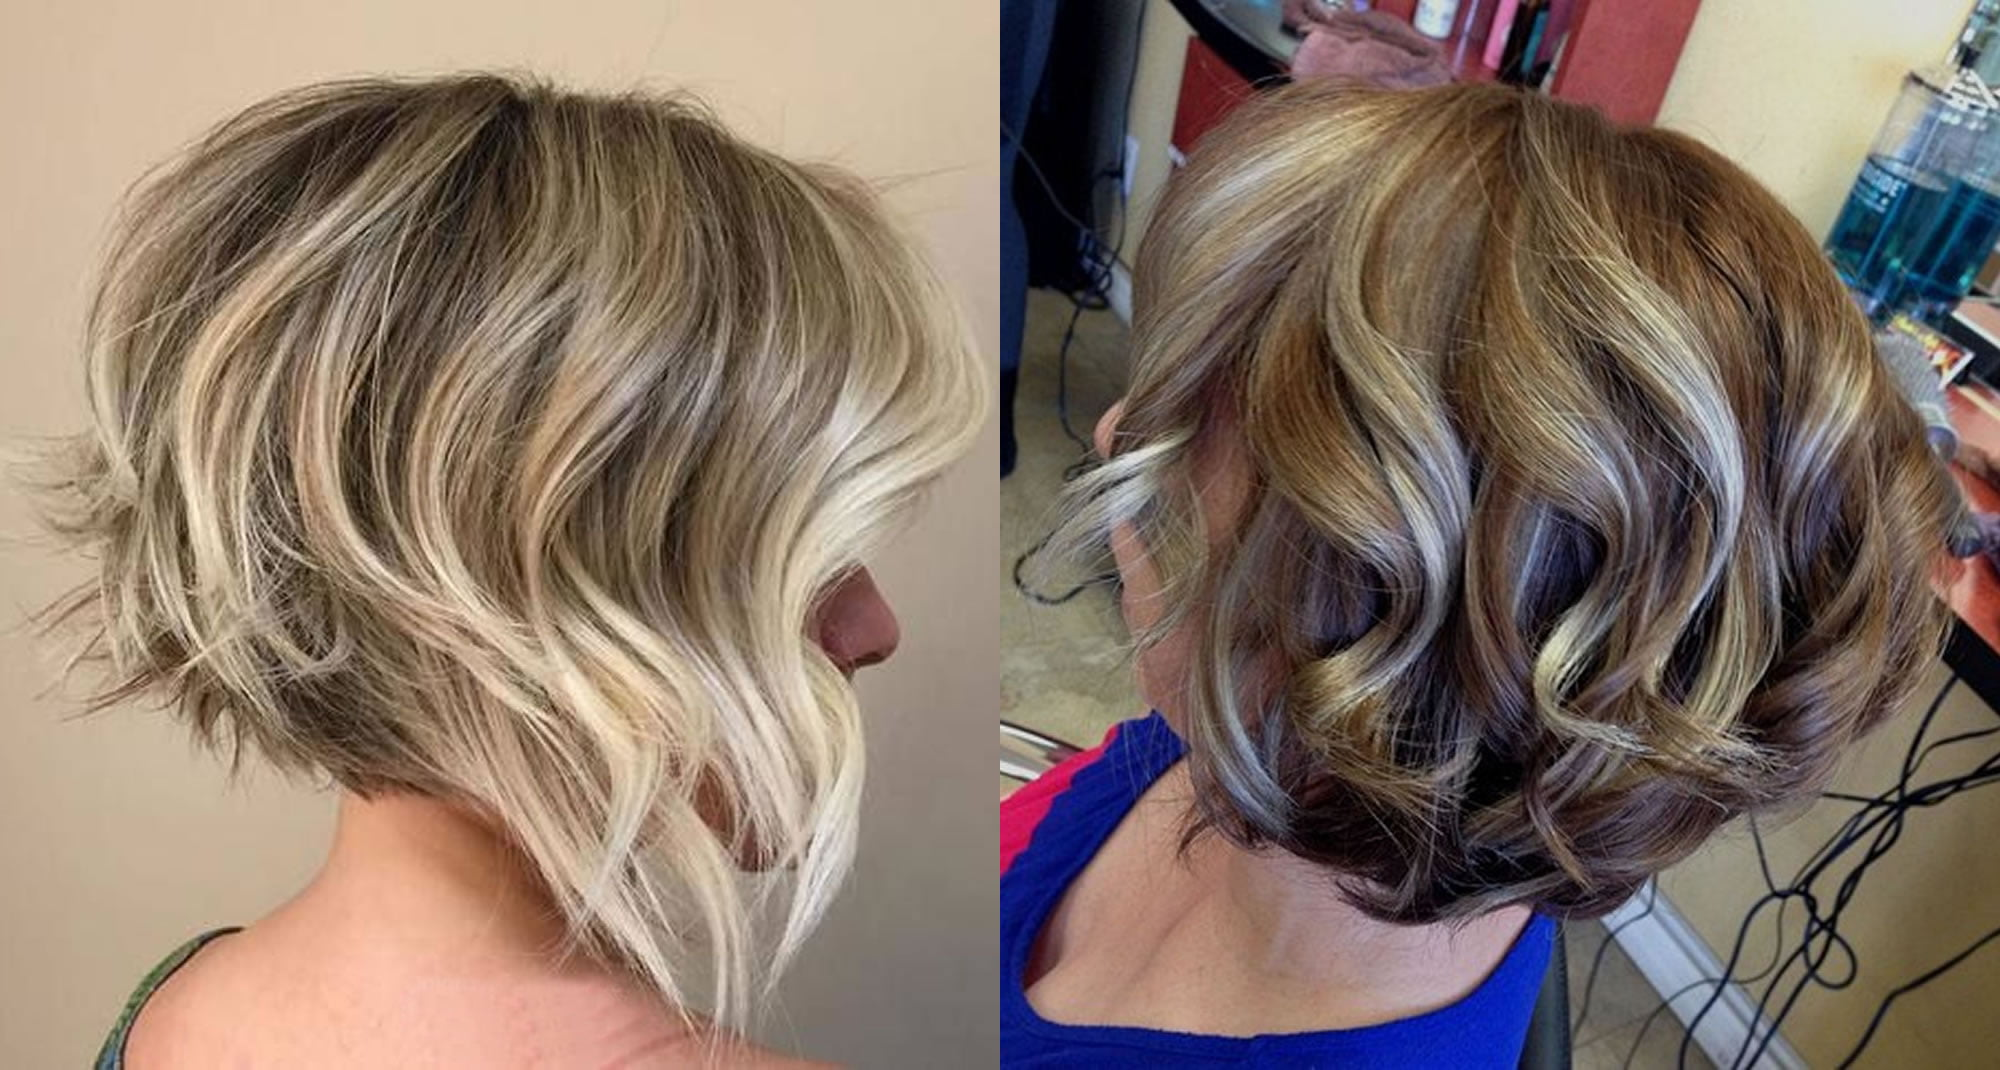 Watch 11 More Hot Easy Short Haircuts video